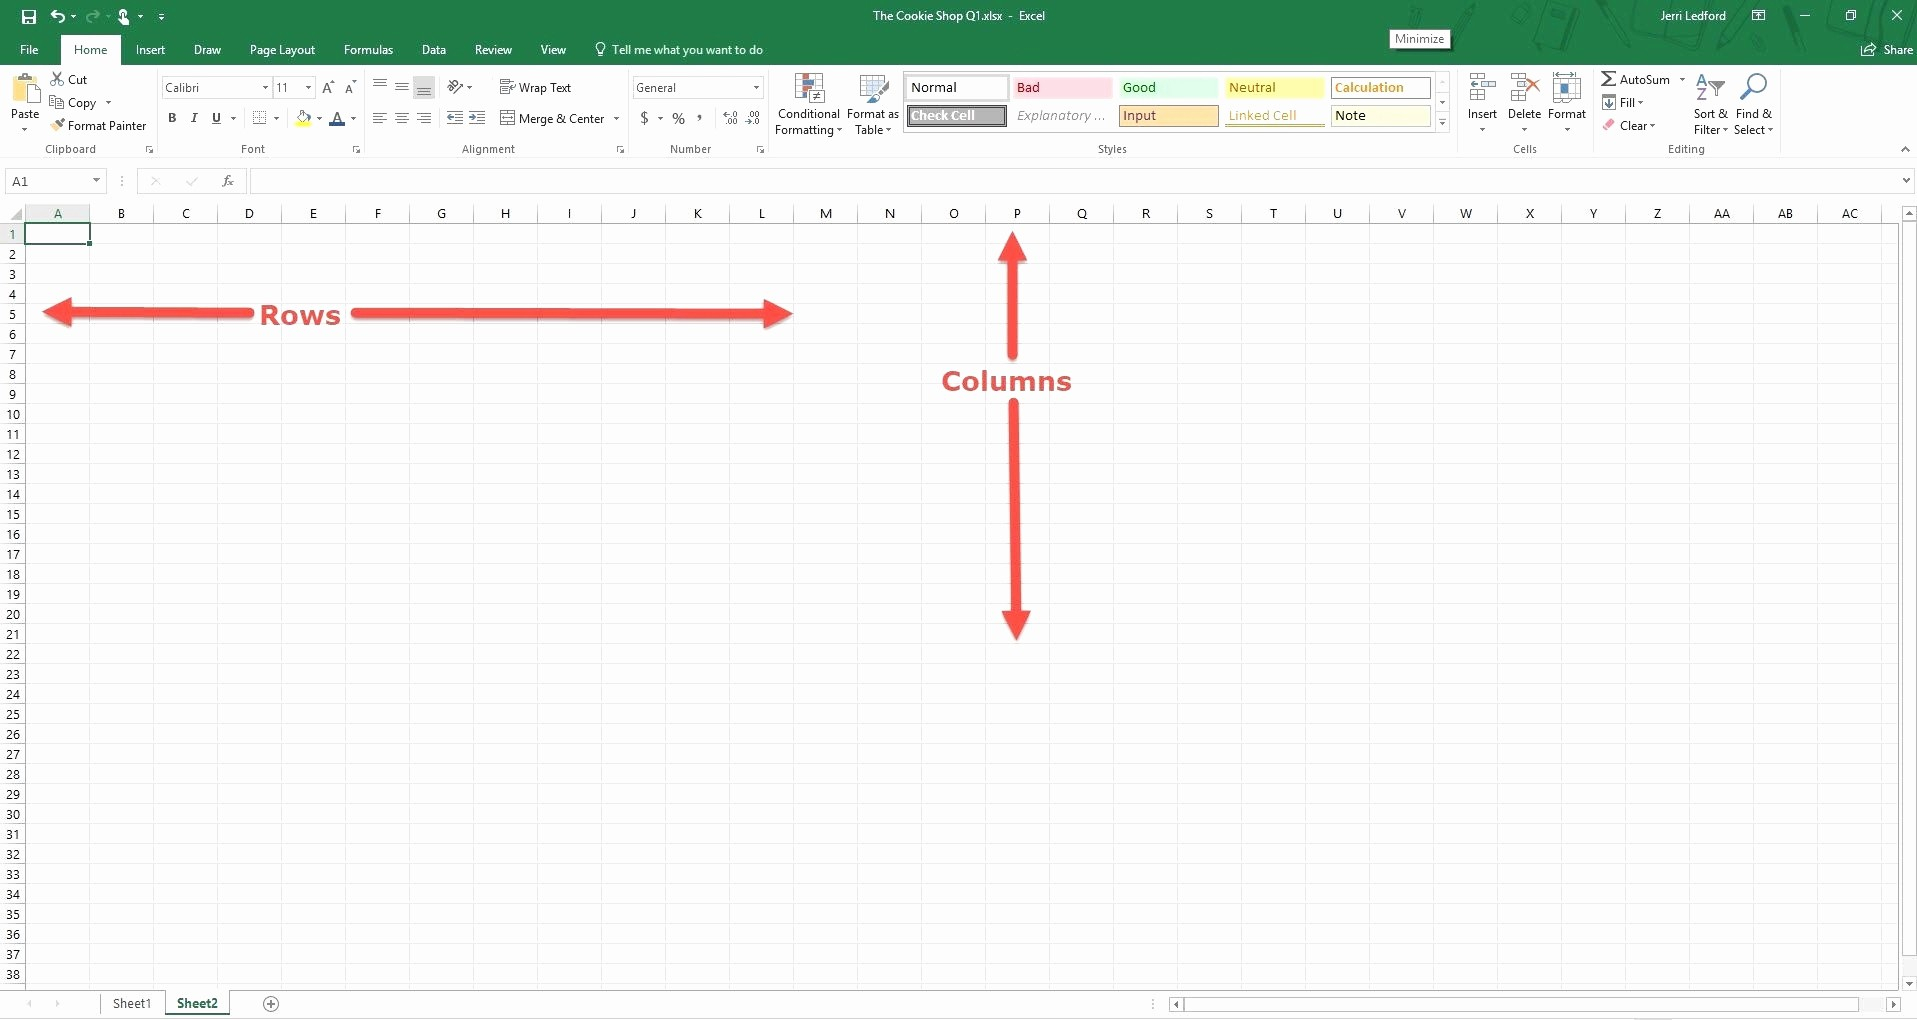 Spreadsheet Tools For Engineers Using Excel 2007 Ebook Pertaining To Spreadsheet Tools For Engineers Using Excel 2007 Ebook